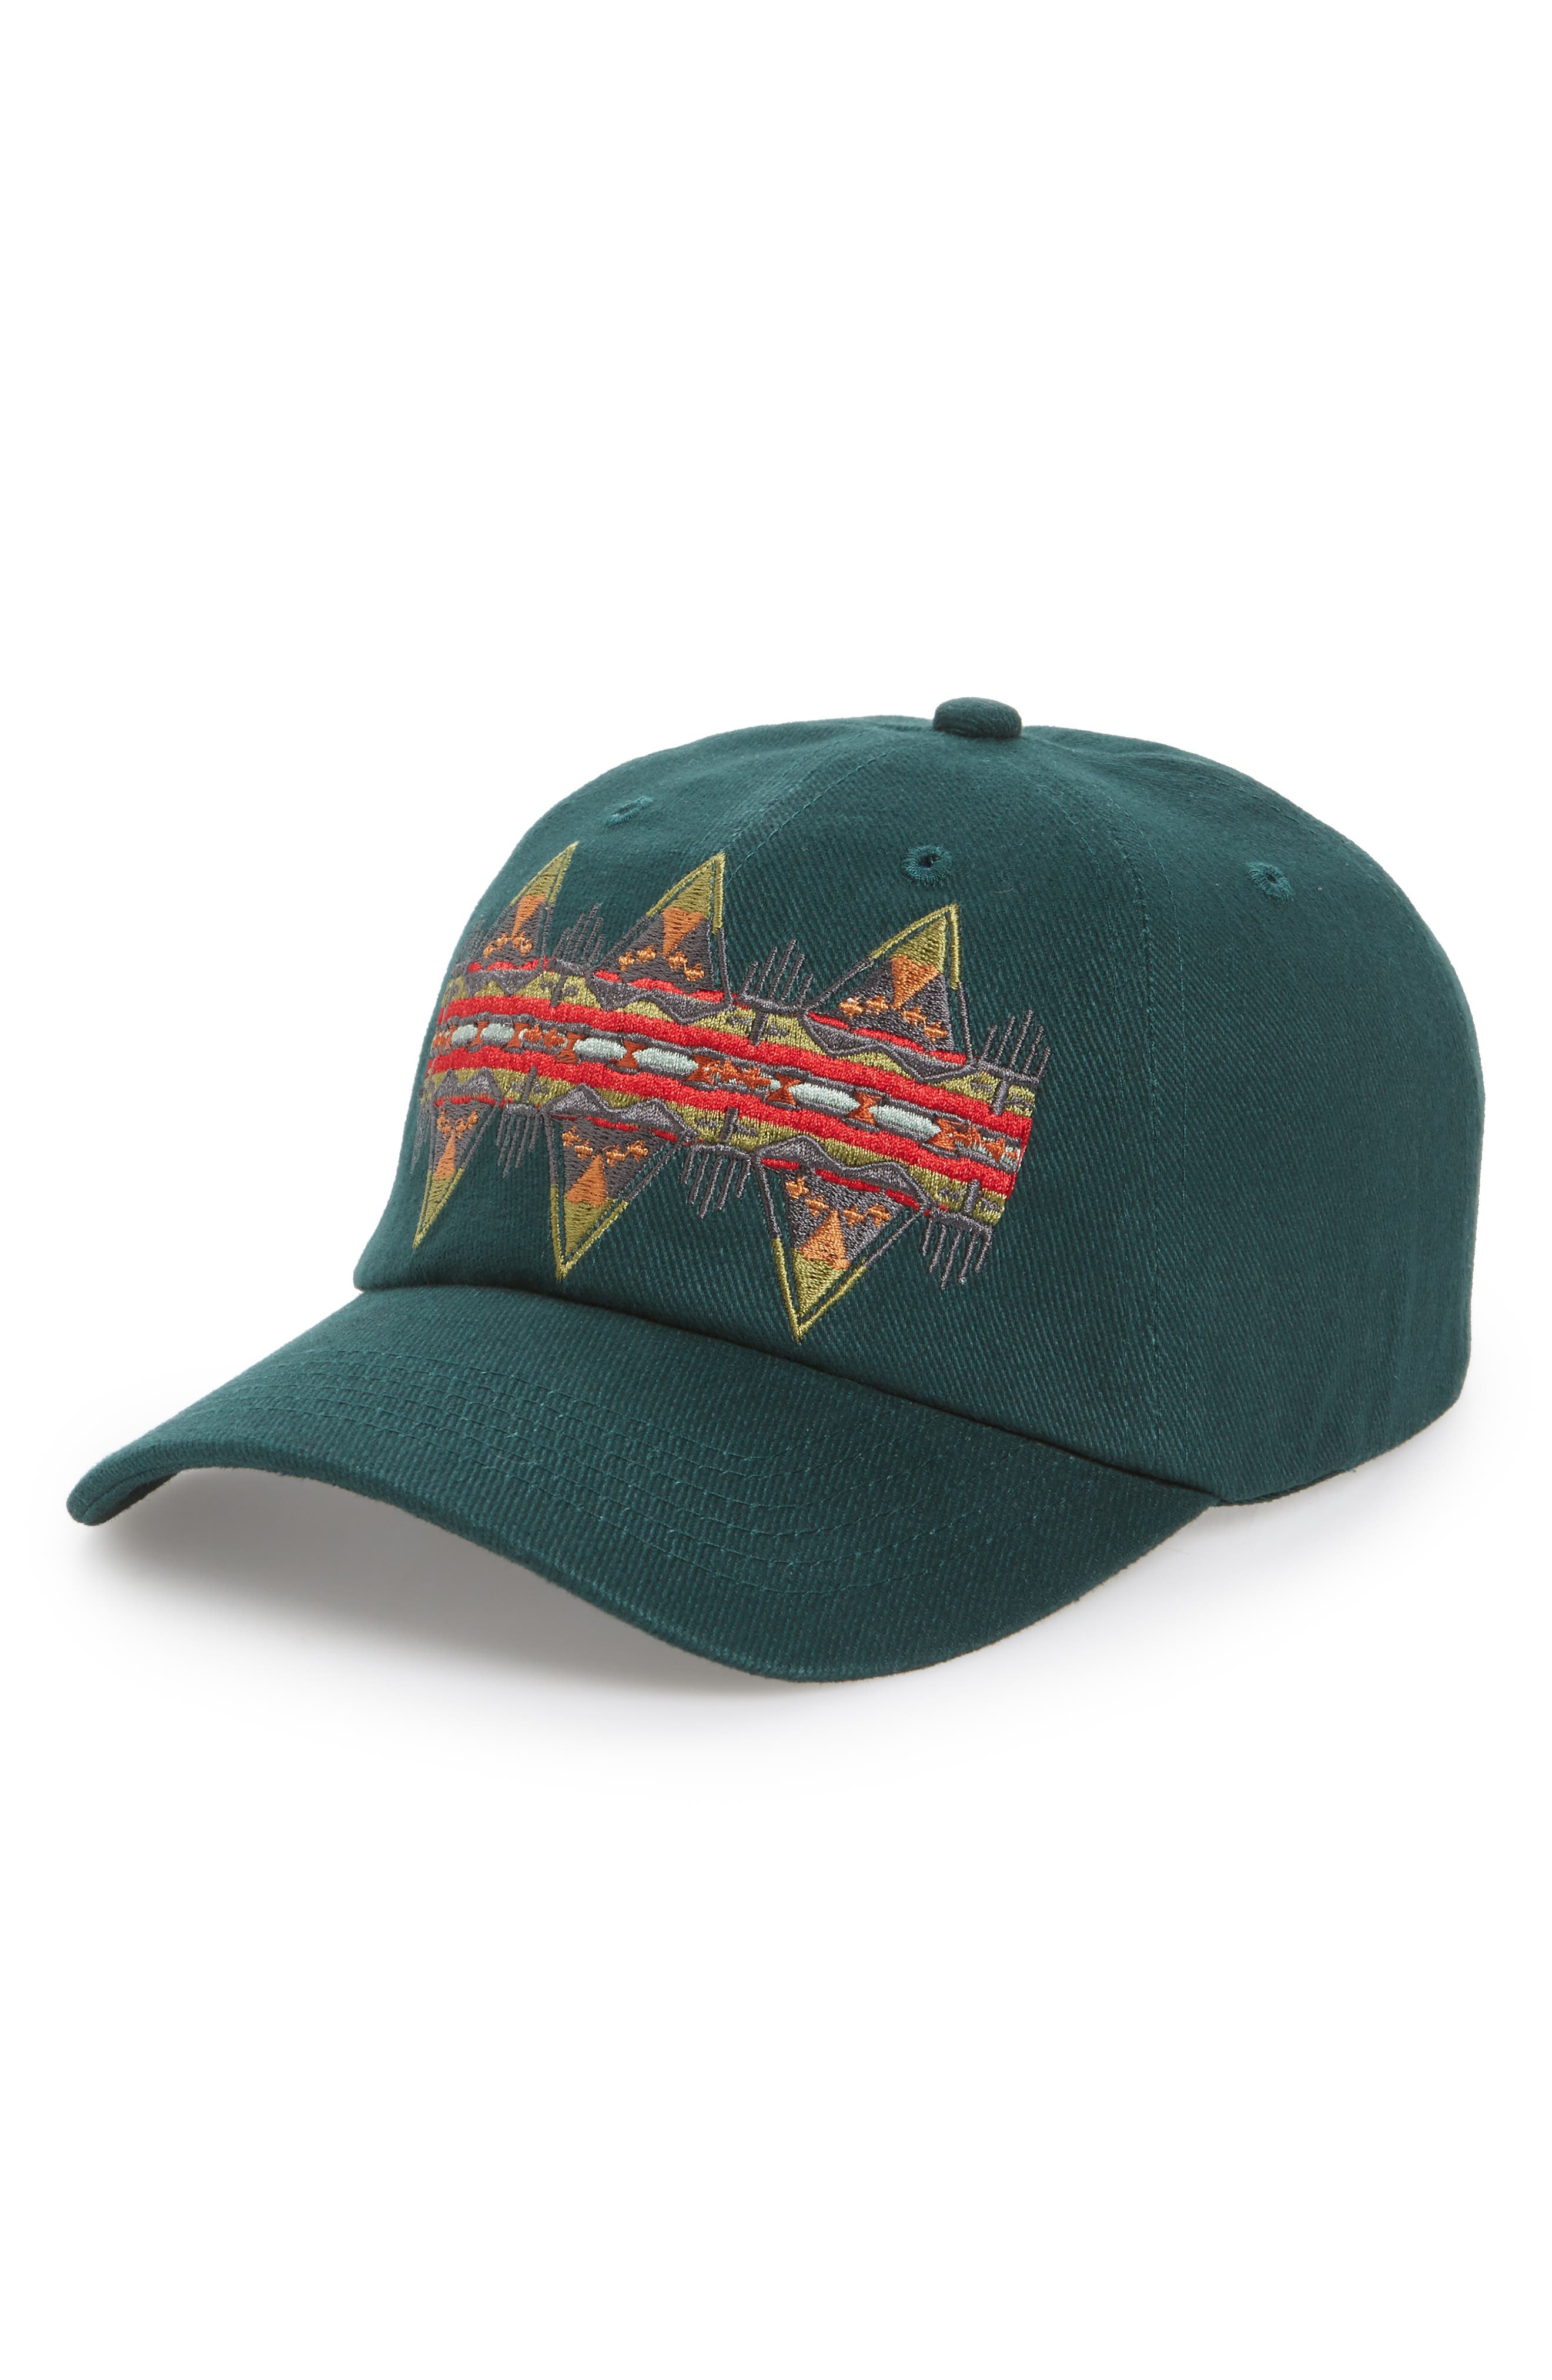 Alternate Image 1 Selected - Pendleton Embroidered Ball Cap